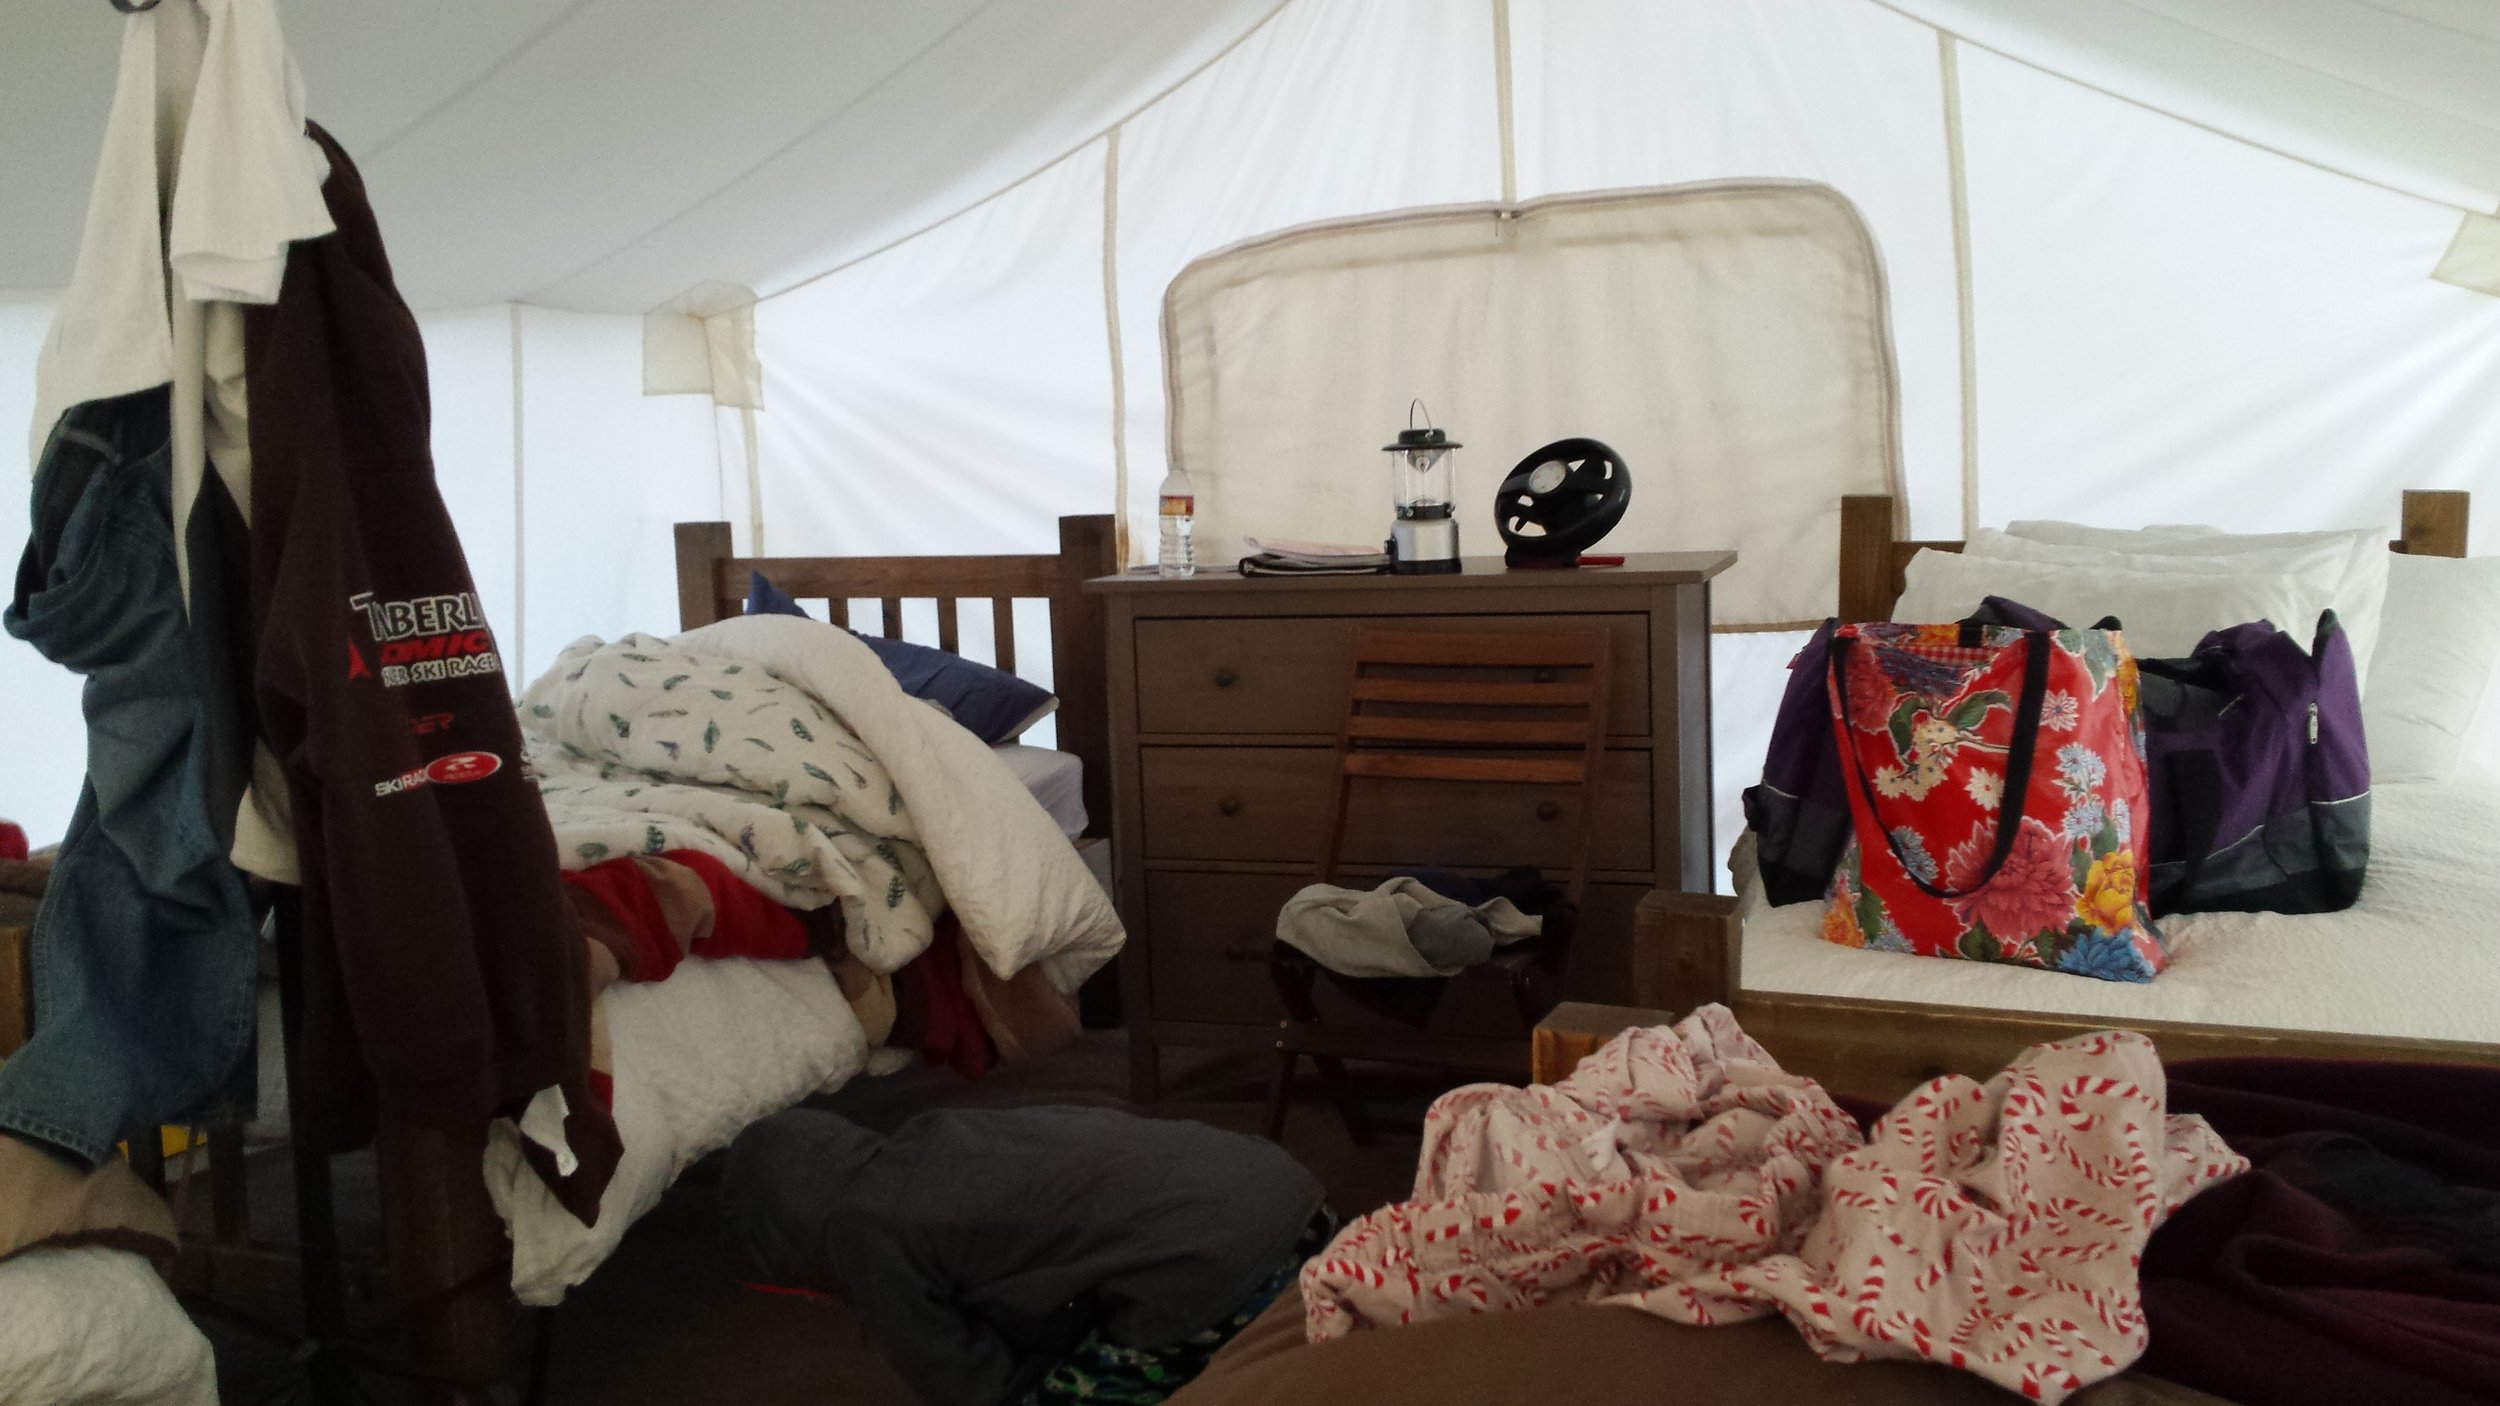 MessyTEnt